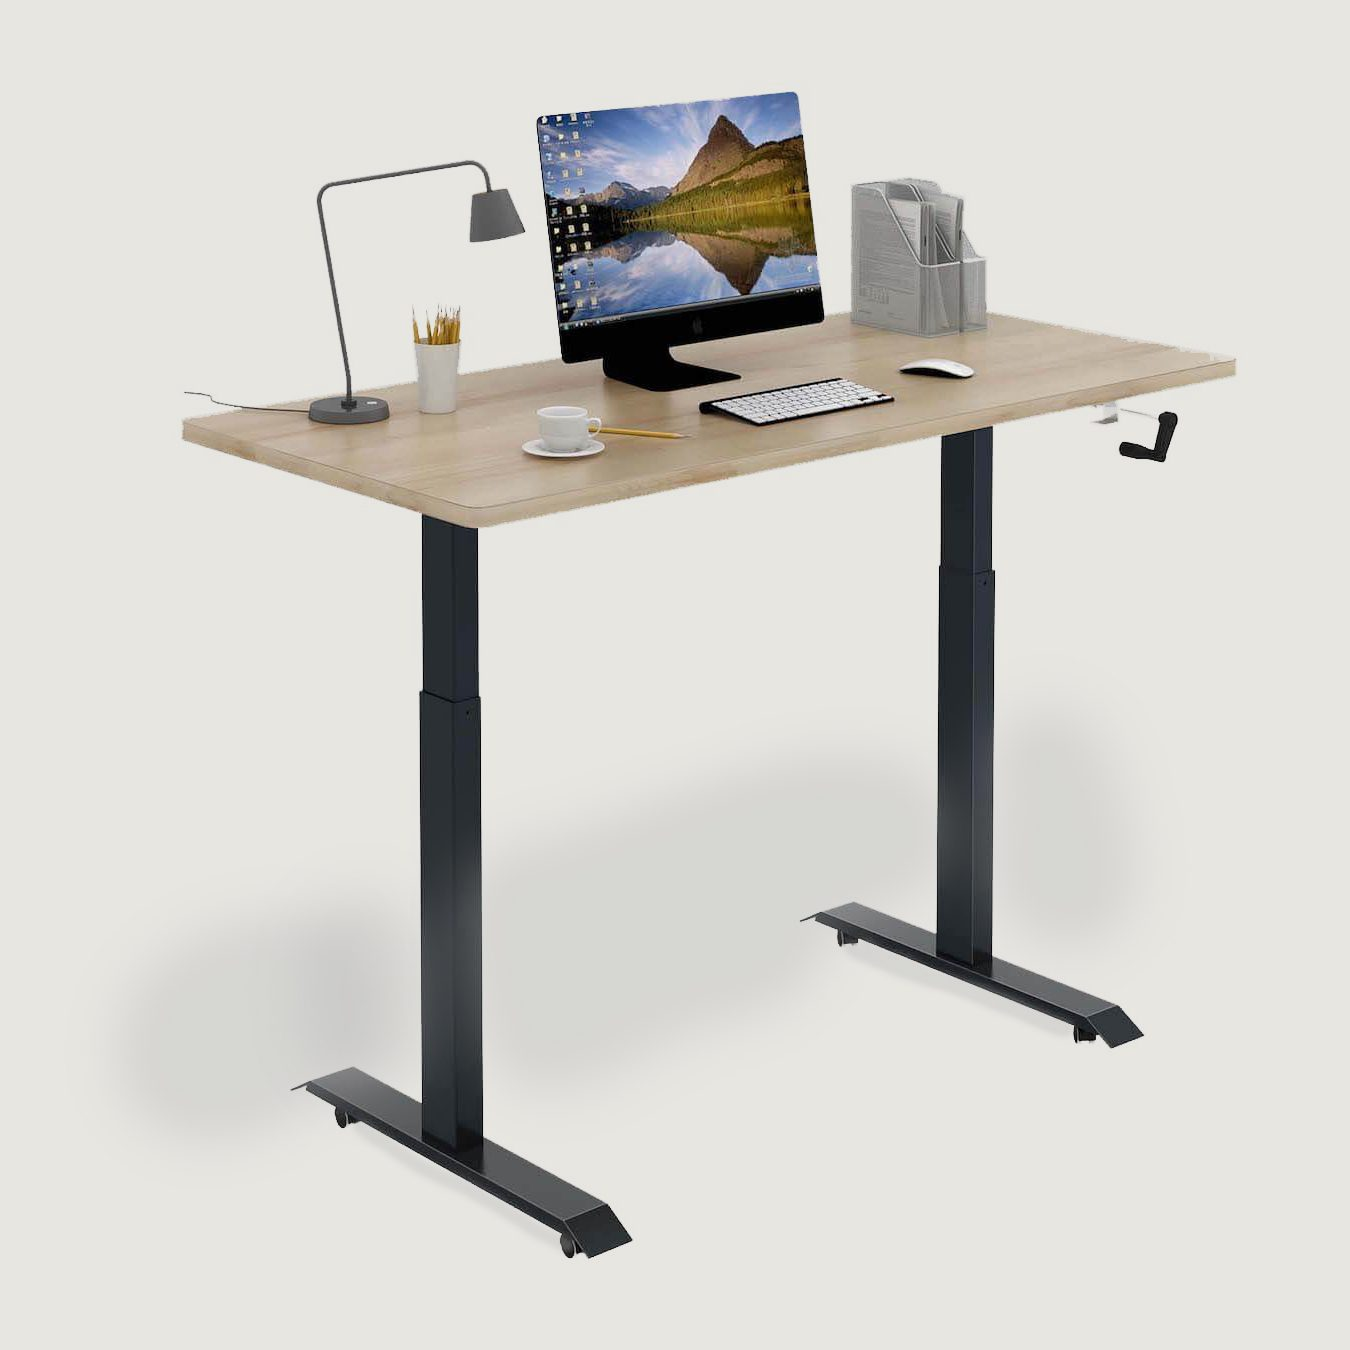 Stance Executive Manually Adjusted Full-Sized Standing Desk 45 Degree Full View